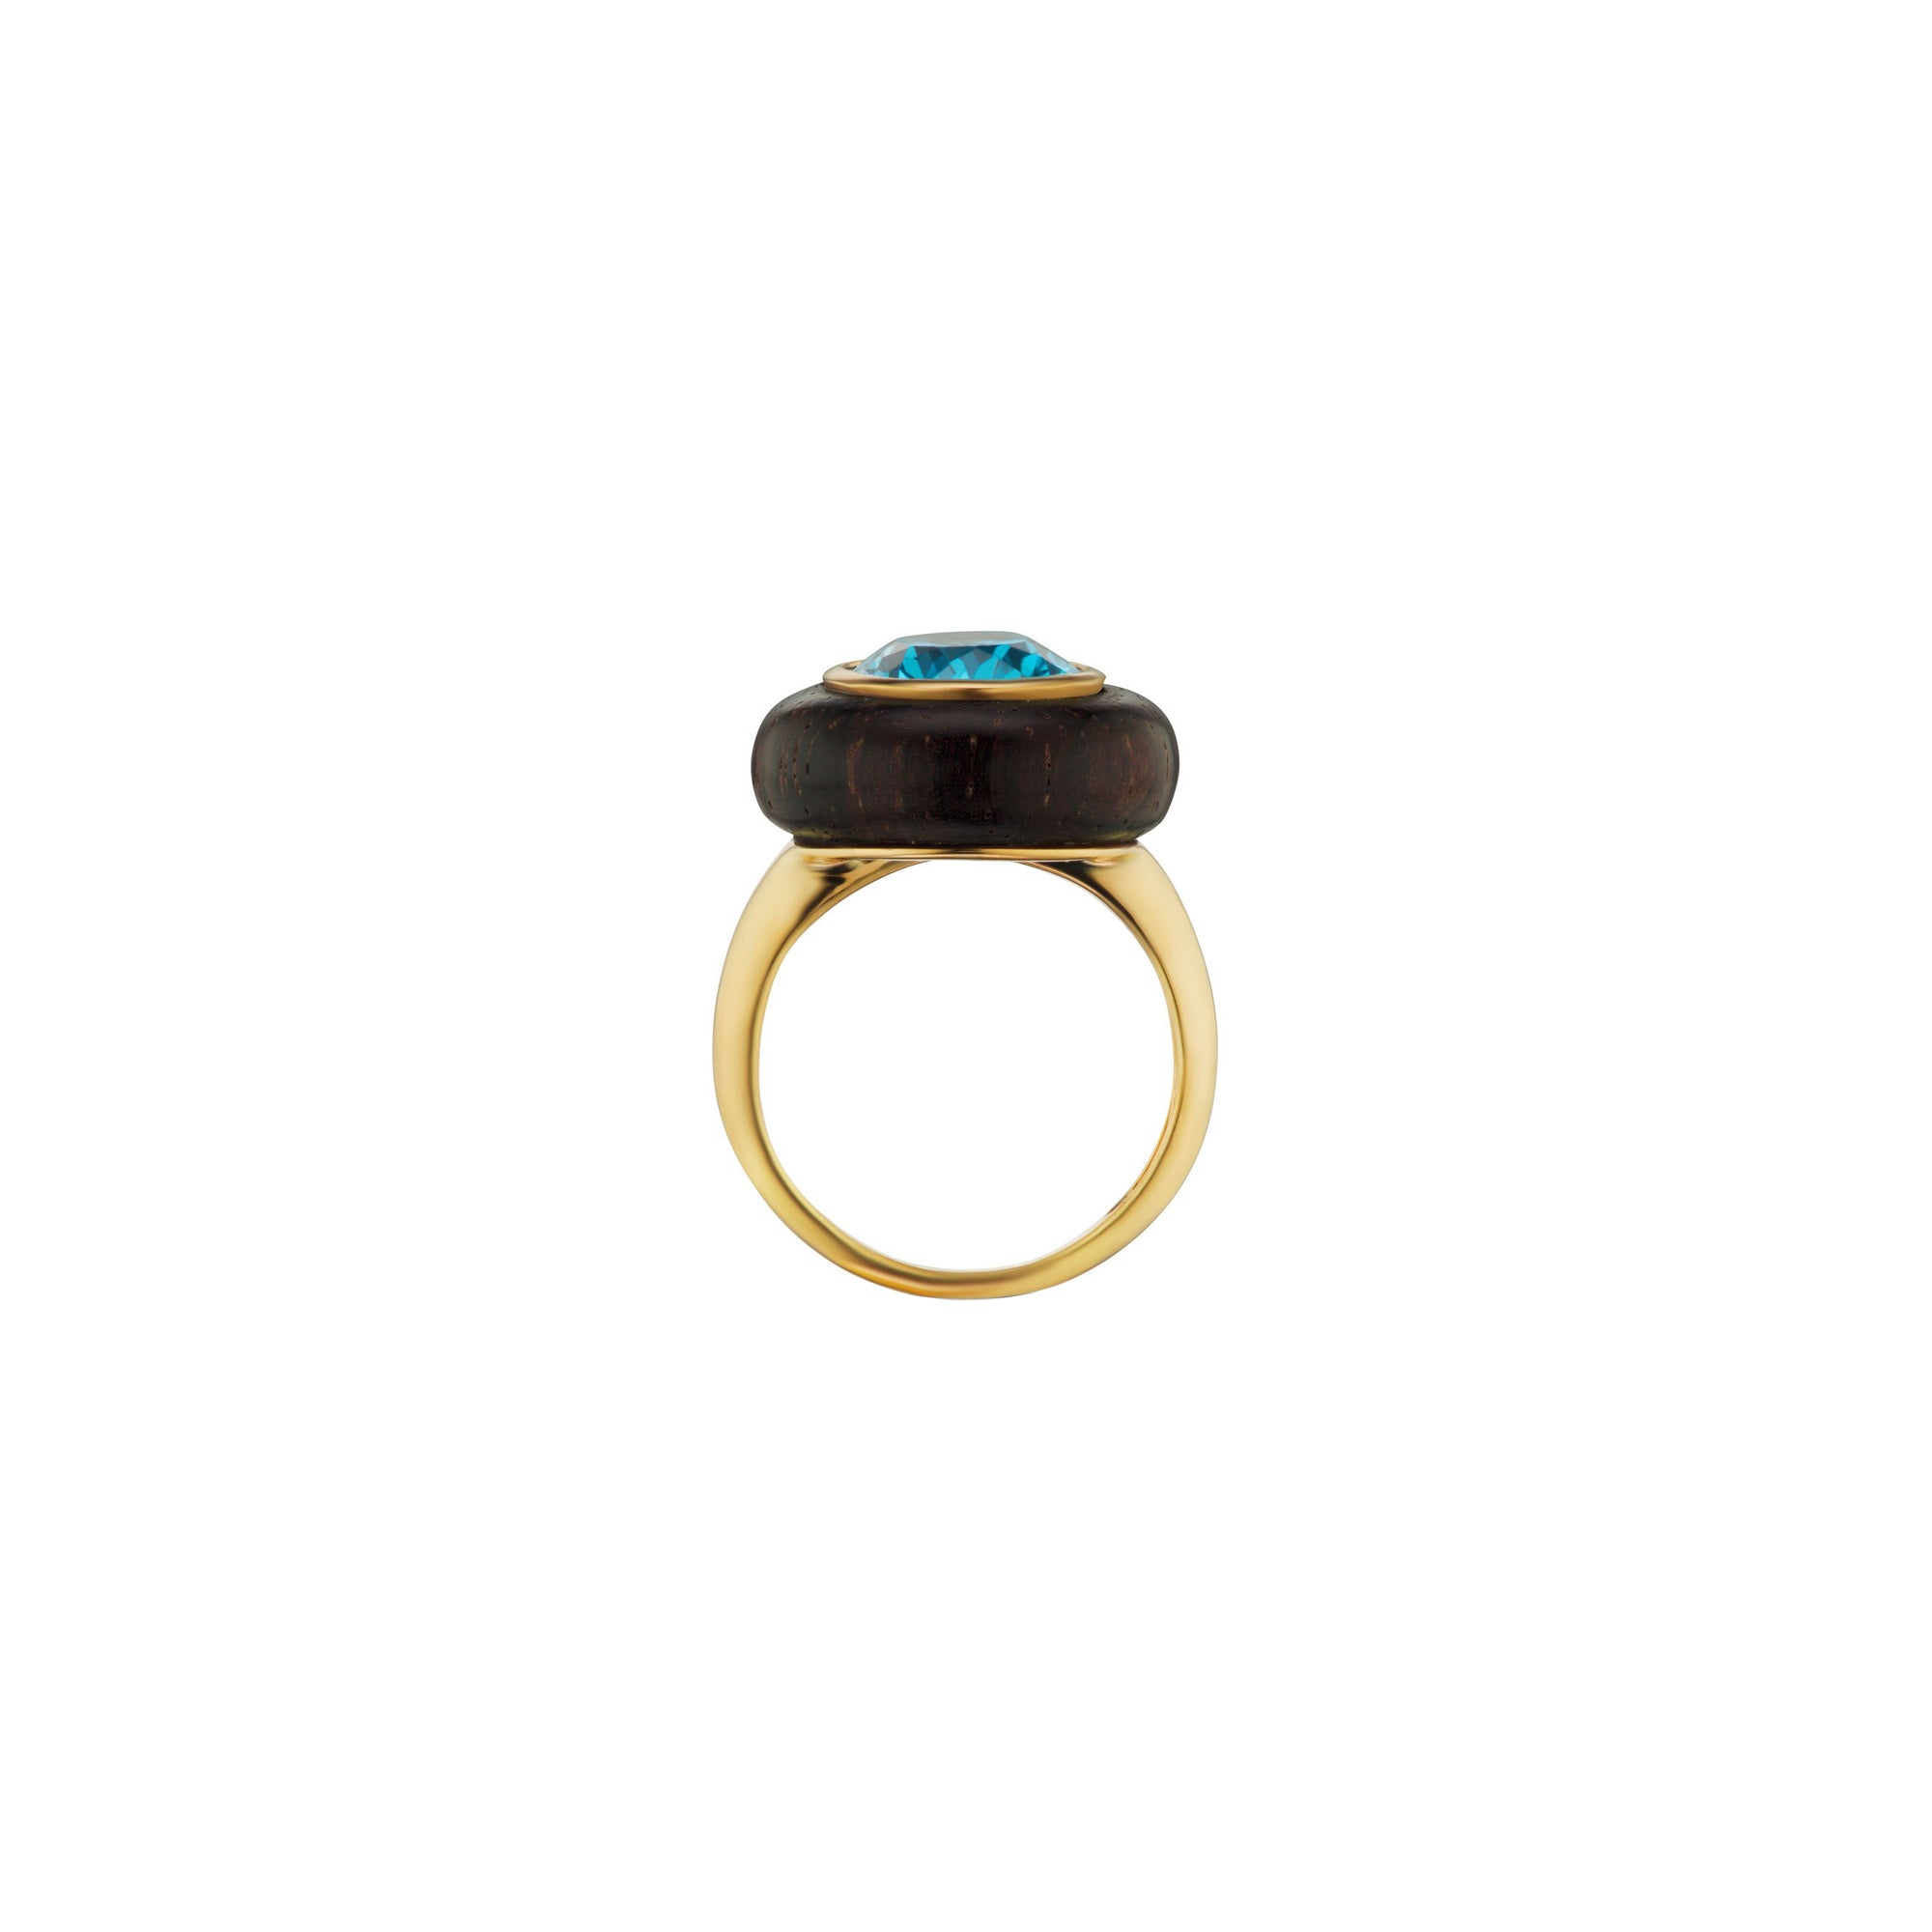 Maria Canale Voyager North-South Oval Cut Ring - Blue Topaz - Bracelets - Broken English Jewelry